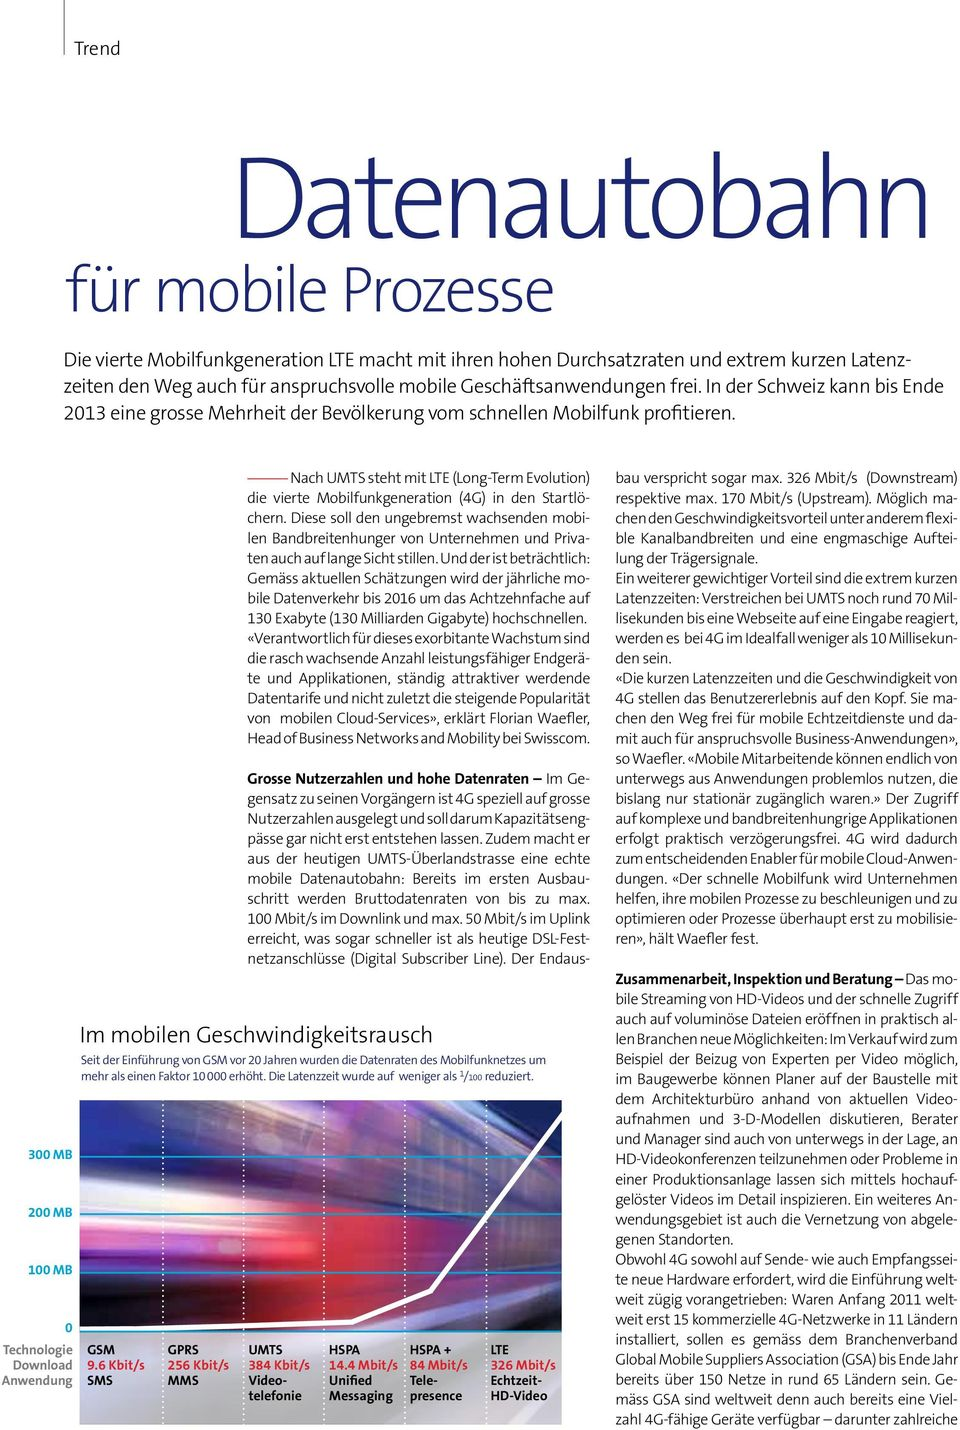 300 MB 200 MB 100 MB 0 Technologie Download Anwendung Nach UMTS steht mit LTE (Long-Term Evolution) die vierte Mobilfunkgeneration (4G) in den Startlöchern.